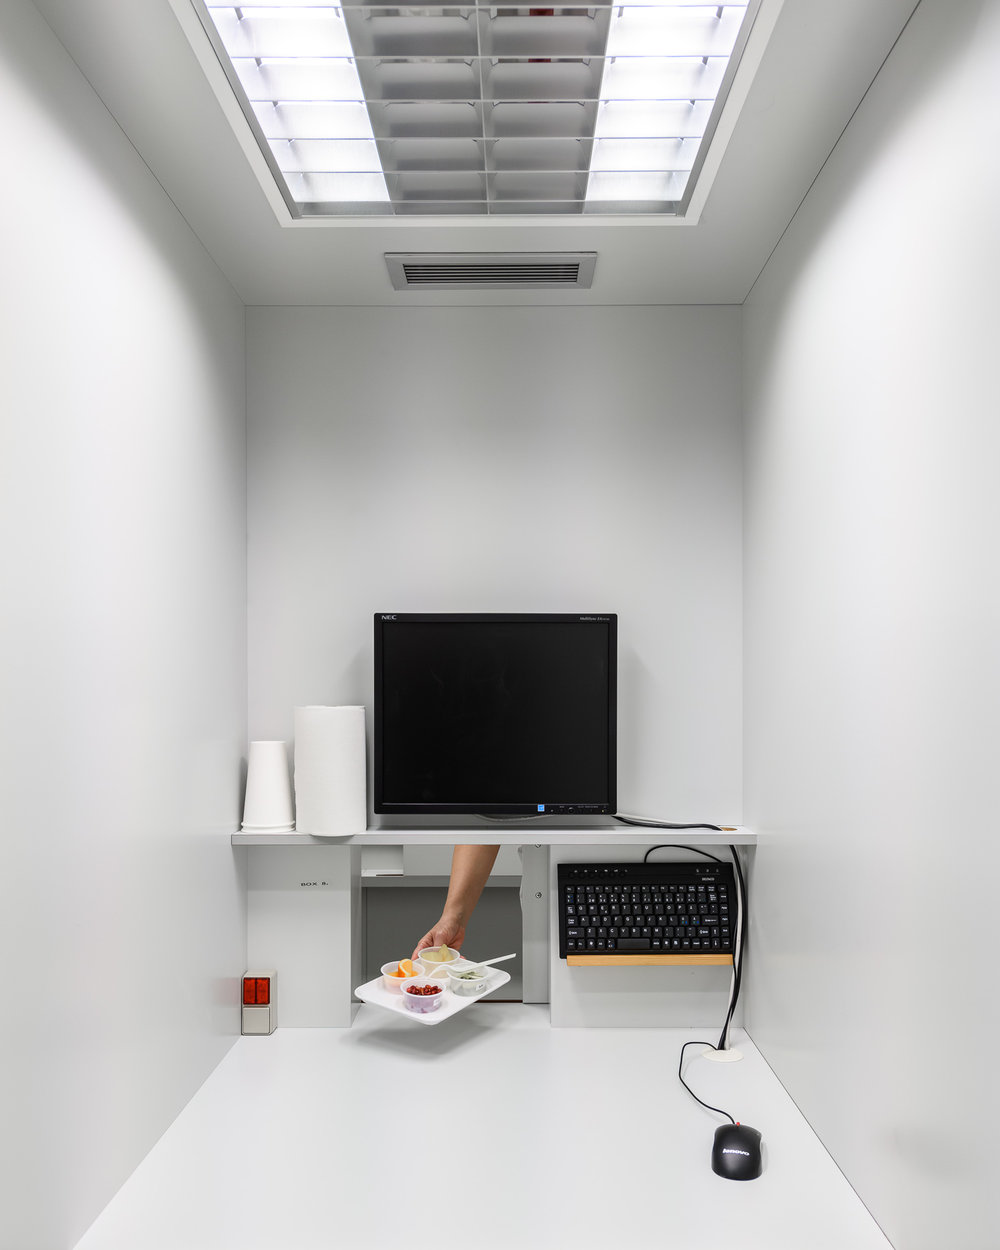 Inside a sensory test booth where trained test-panel members can evaluate the appearance, smell, taste and texture of foods and non-foods objectively